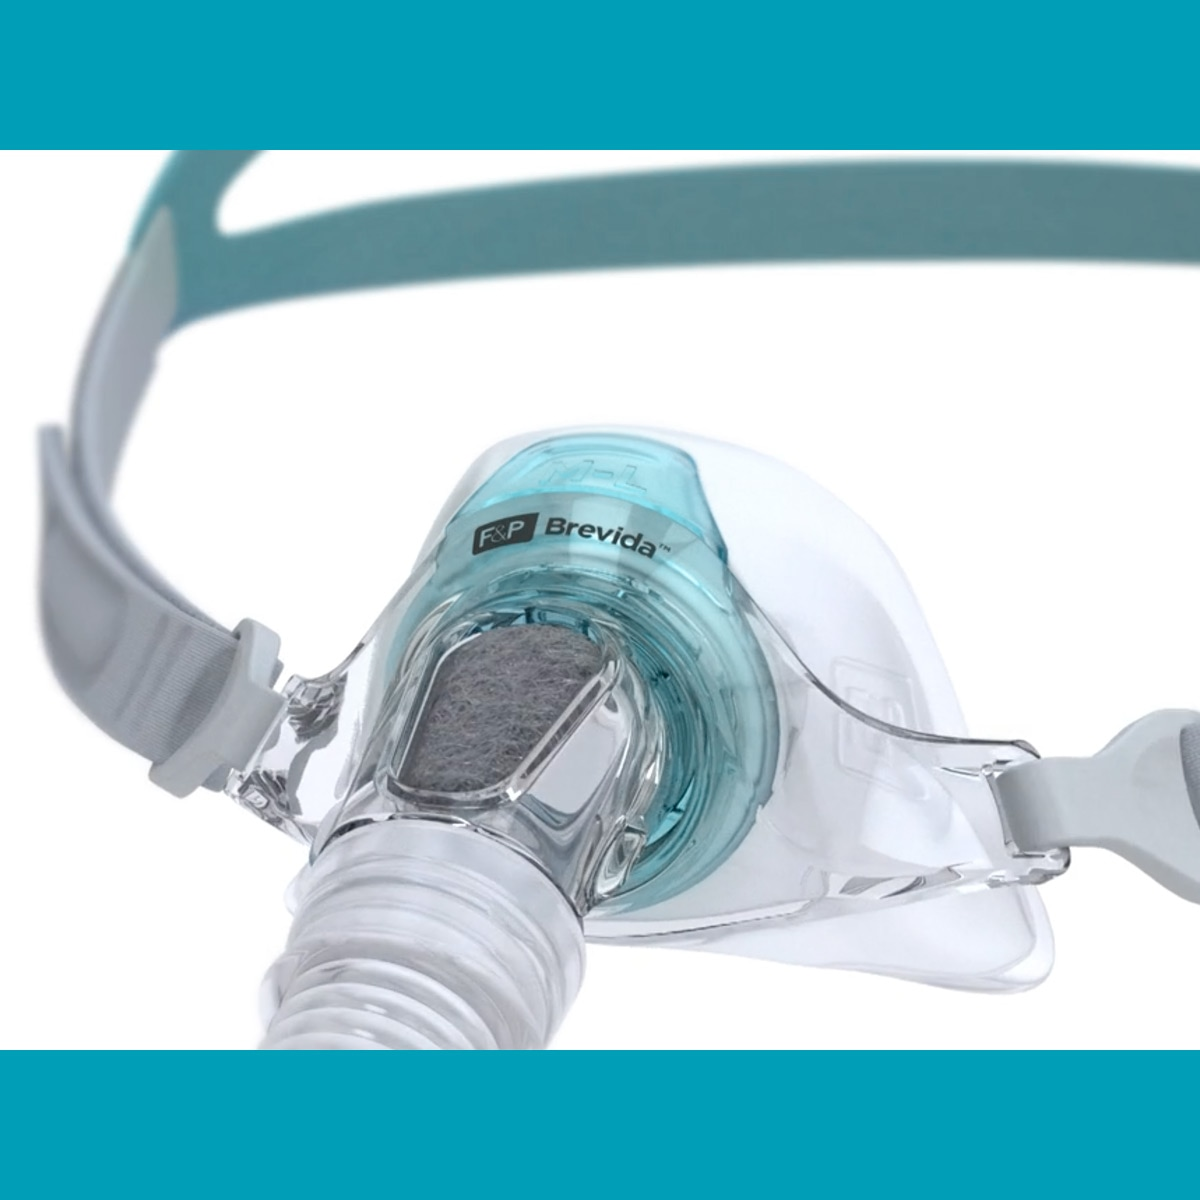 F&P Brevida Nasal Pillow CPAP/BiPAP Mask FitPack with Headgear